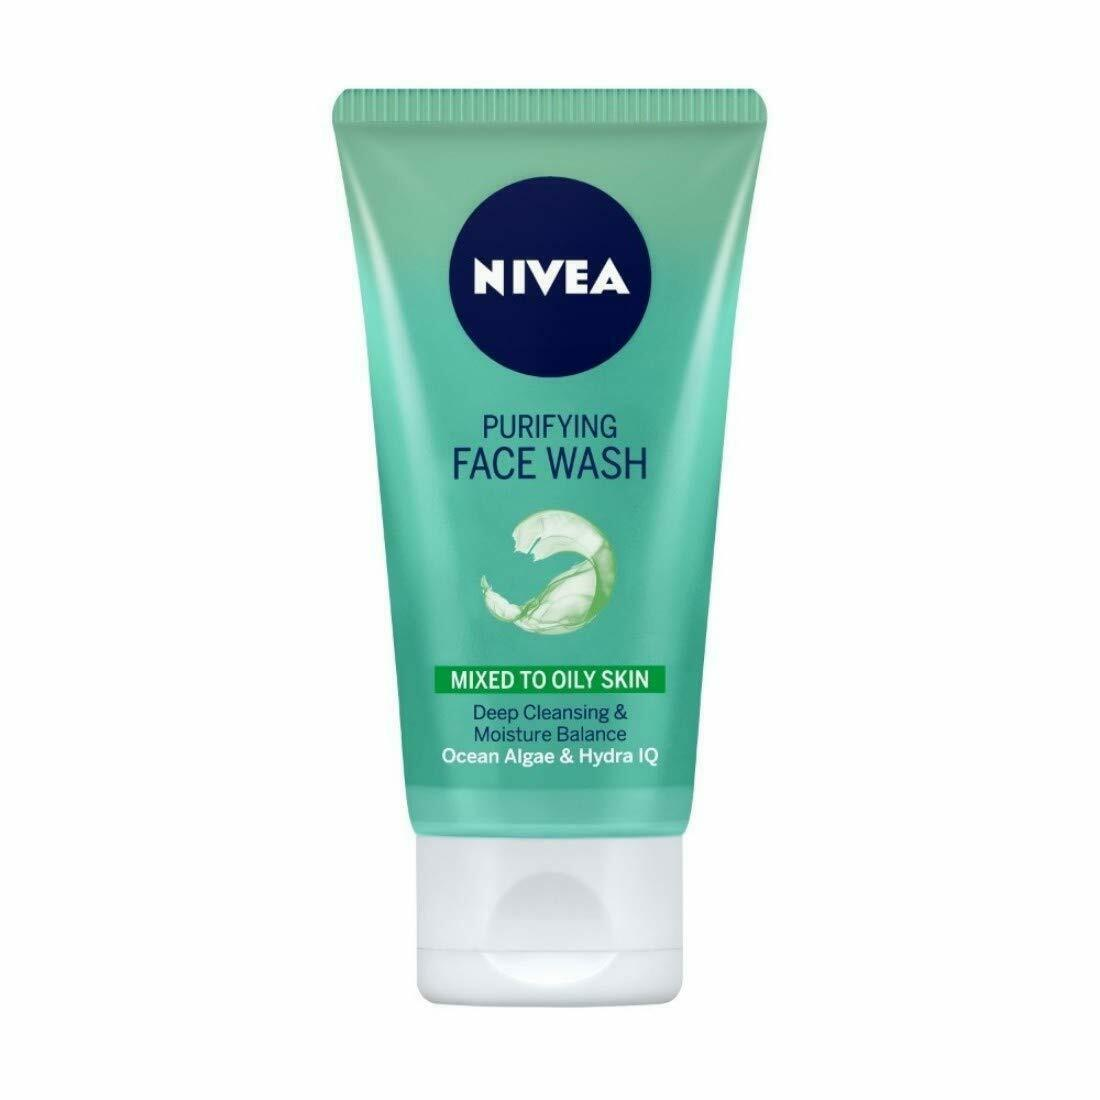 NIVEA Face Wash, Purifying Mixed to Oily Skin With Ocean Algae & Hydra HQ 150 ml - $15.11